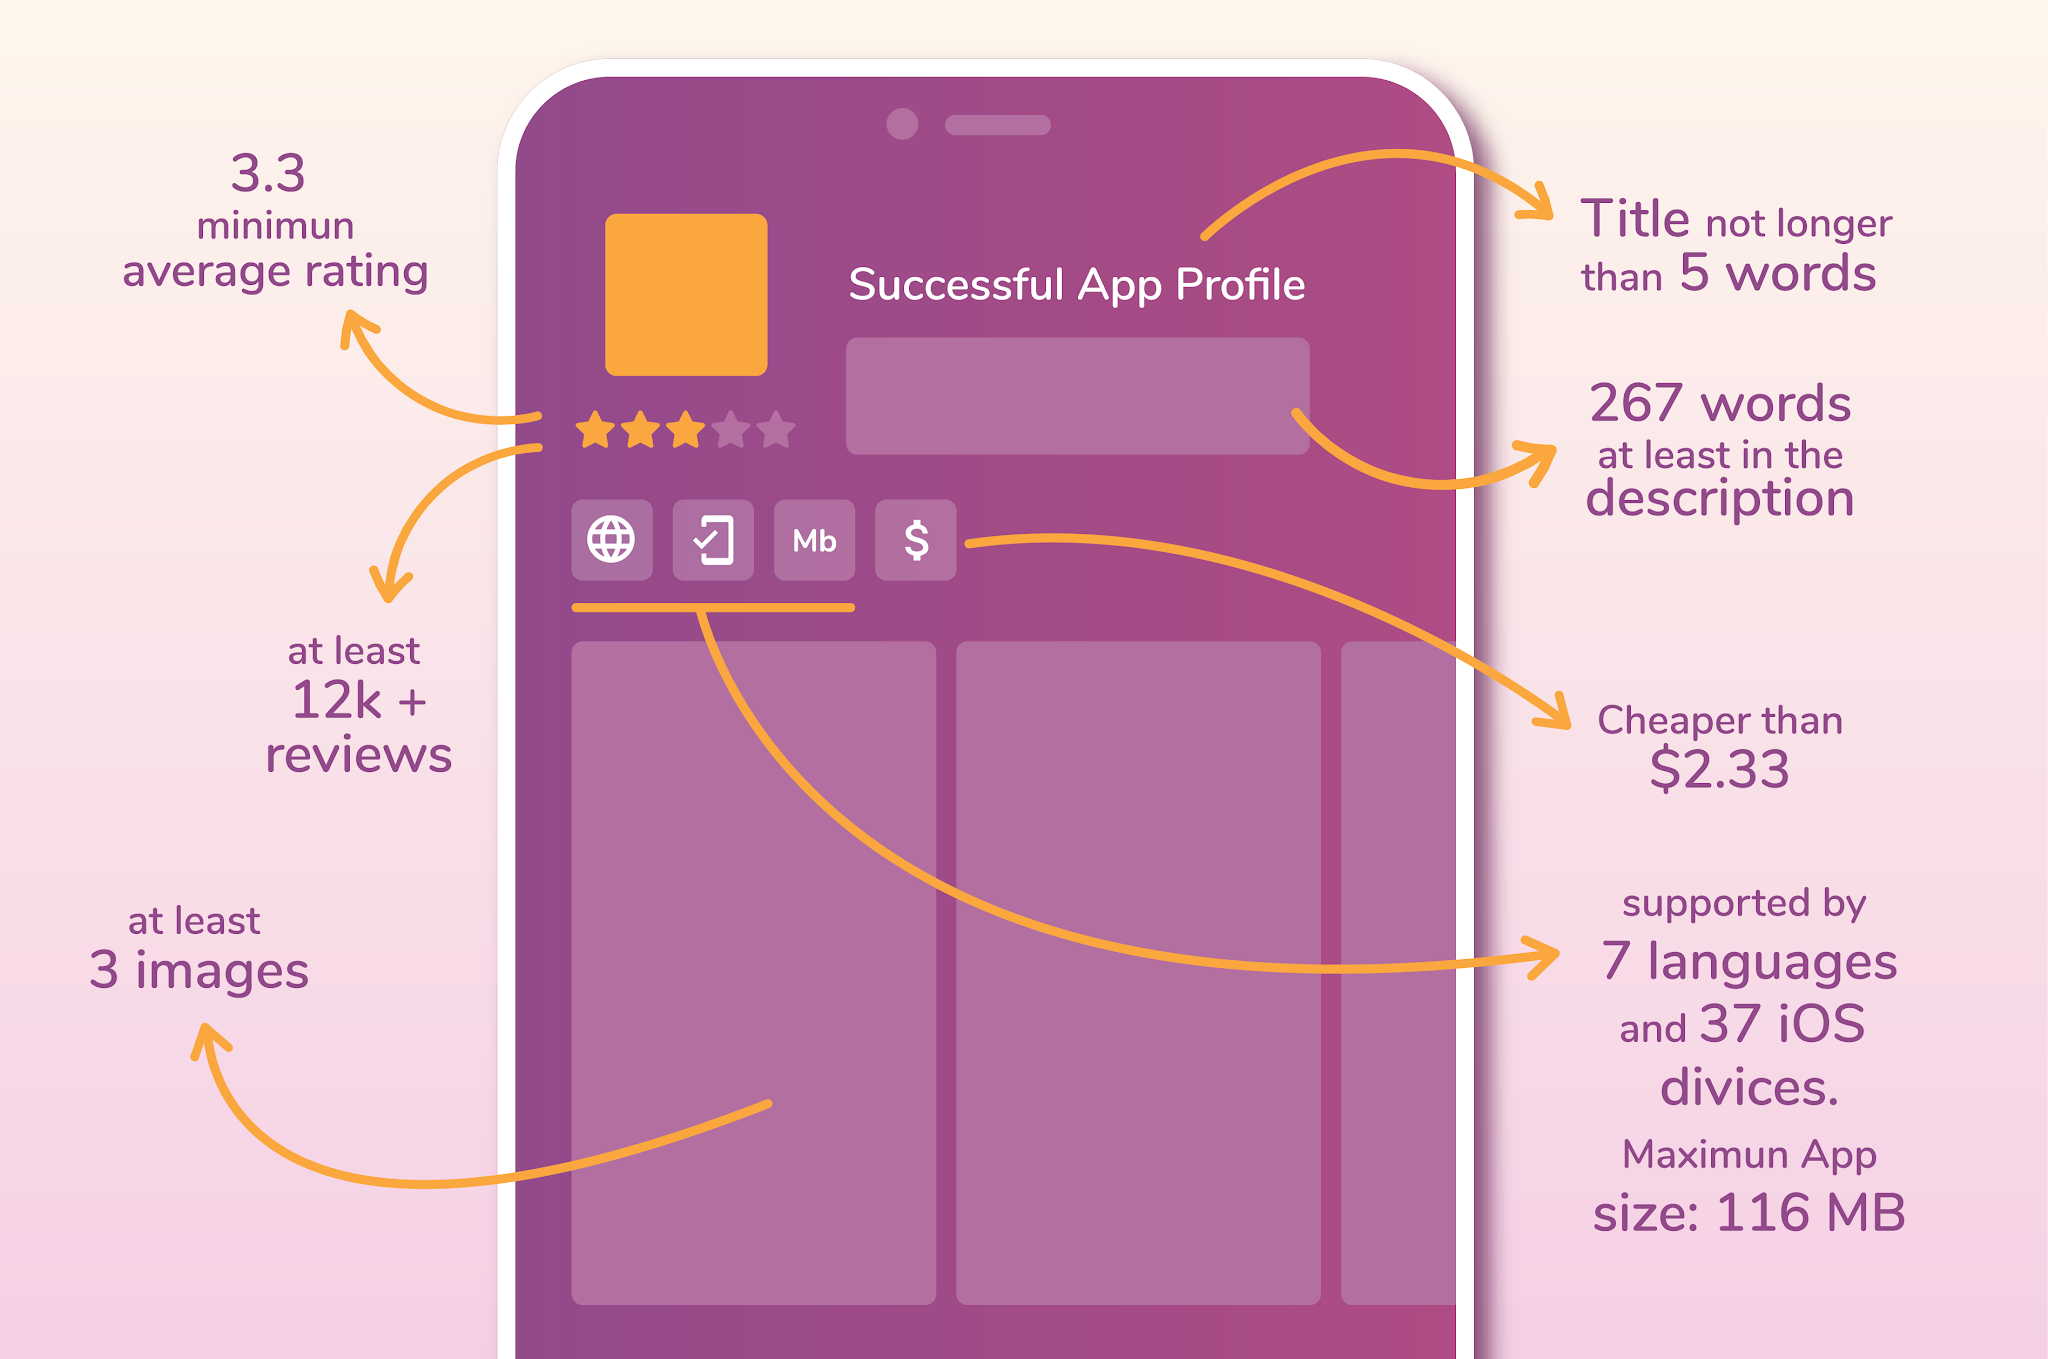 New Data Determines What Makes a Top-Performing App